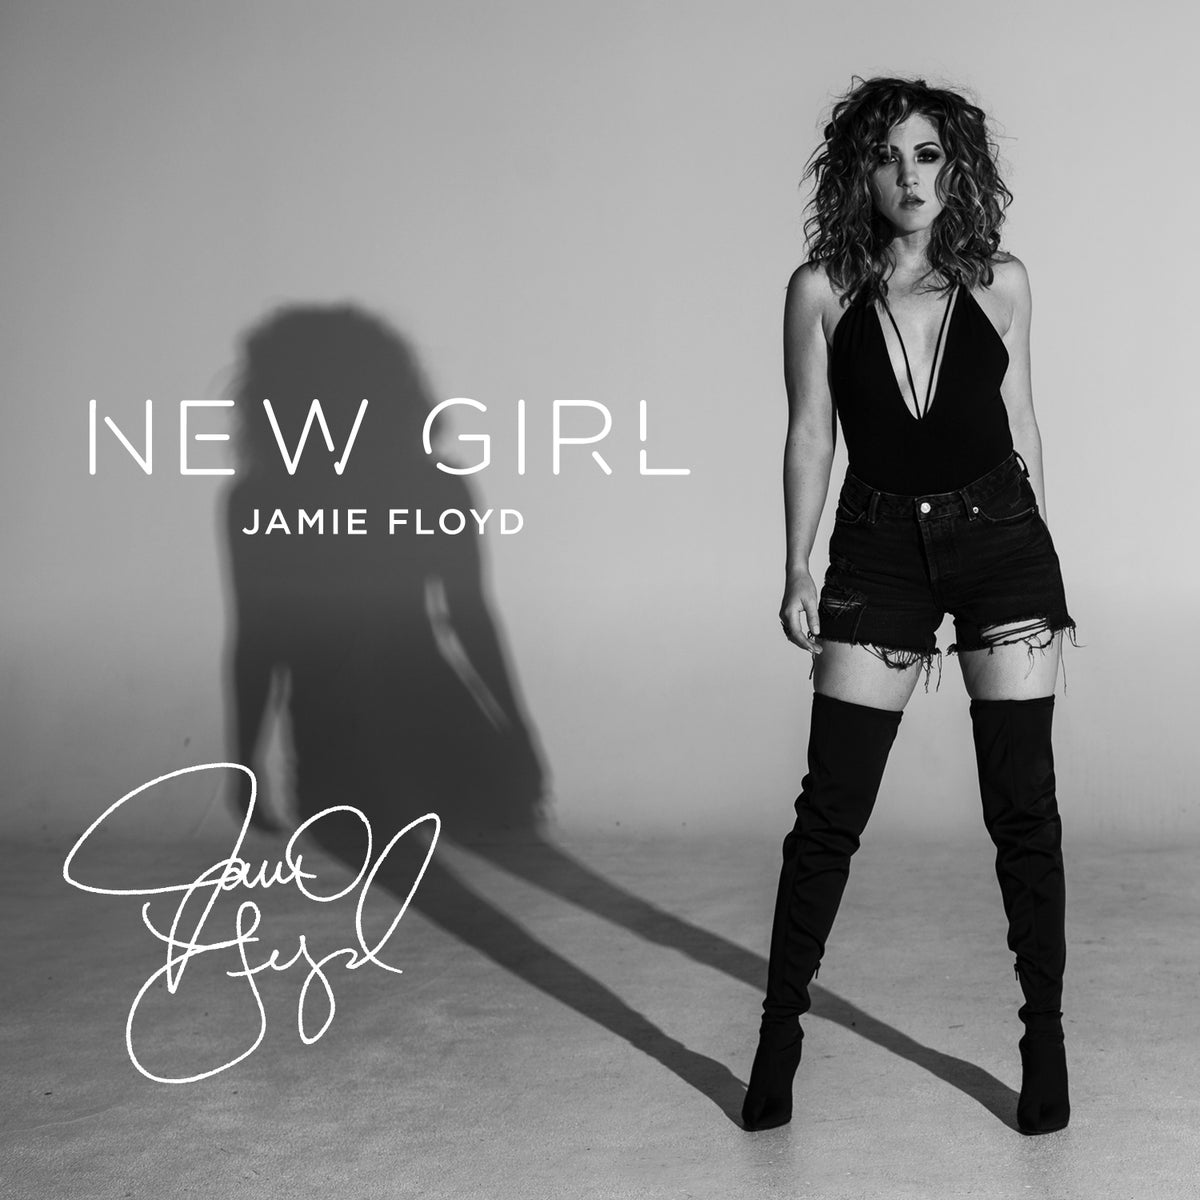 Image of New Girl Autographed EP